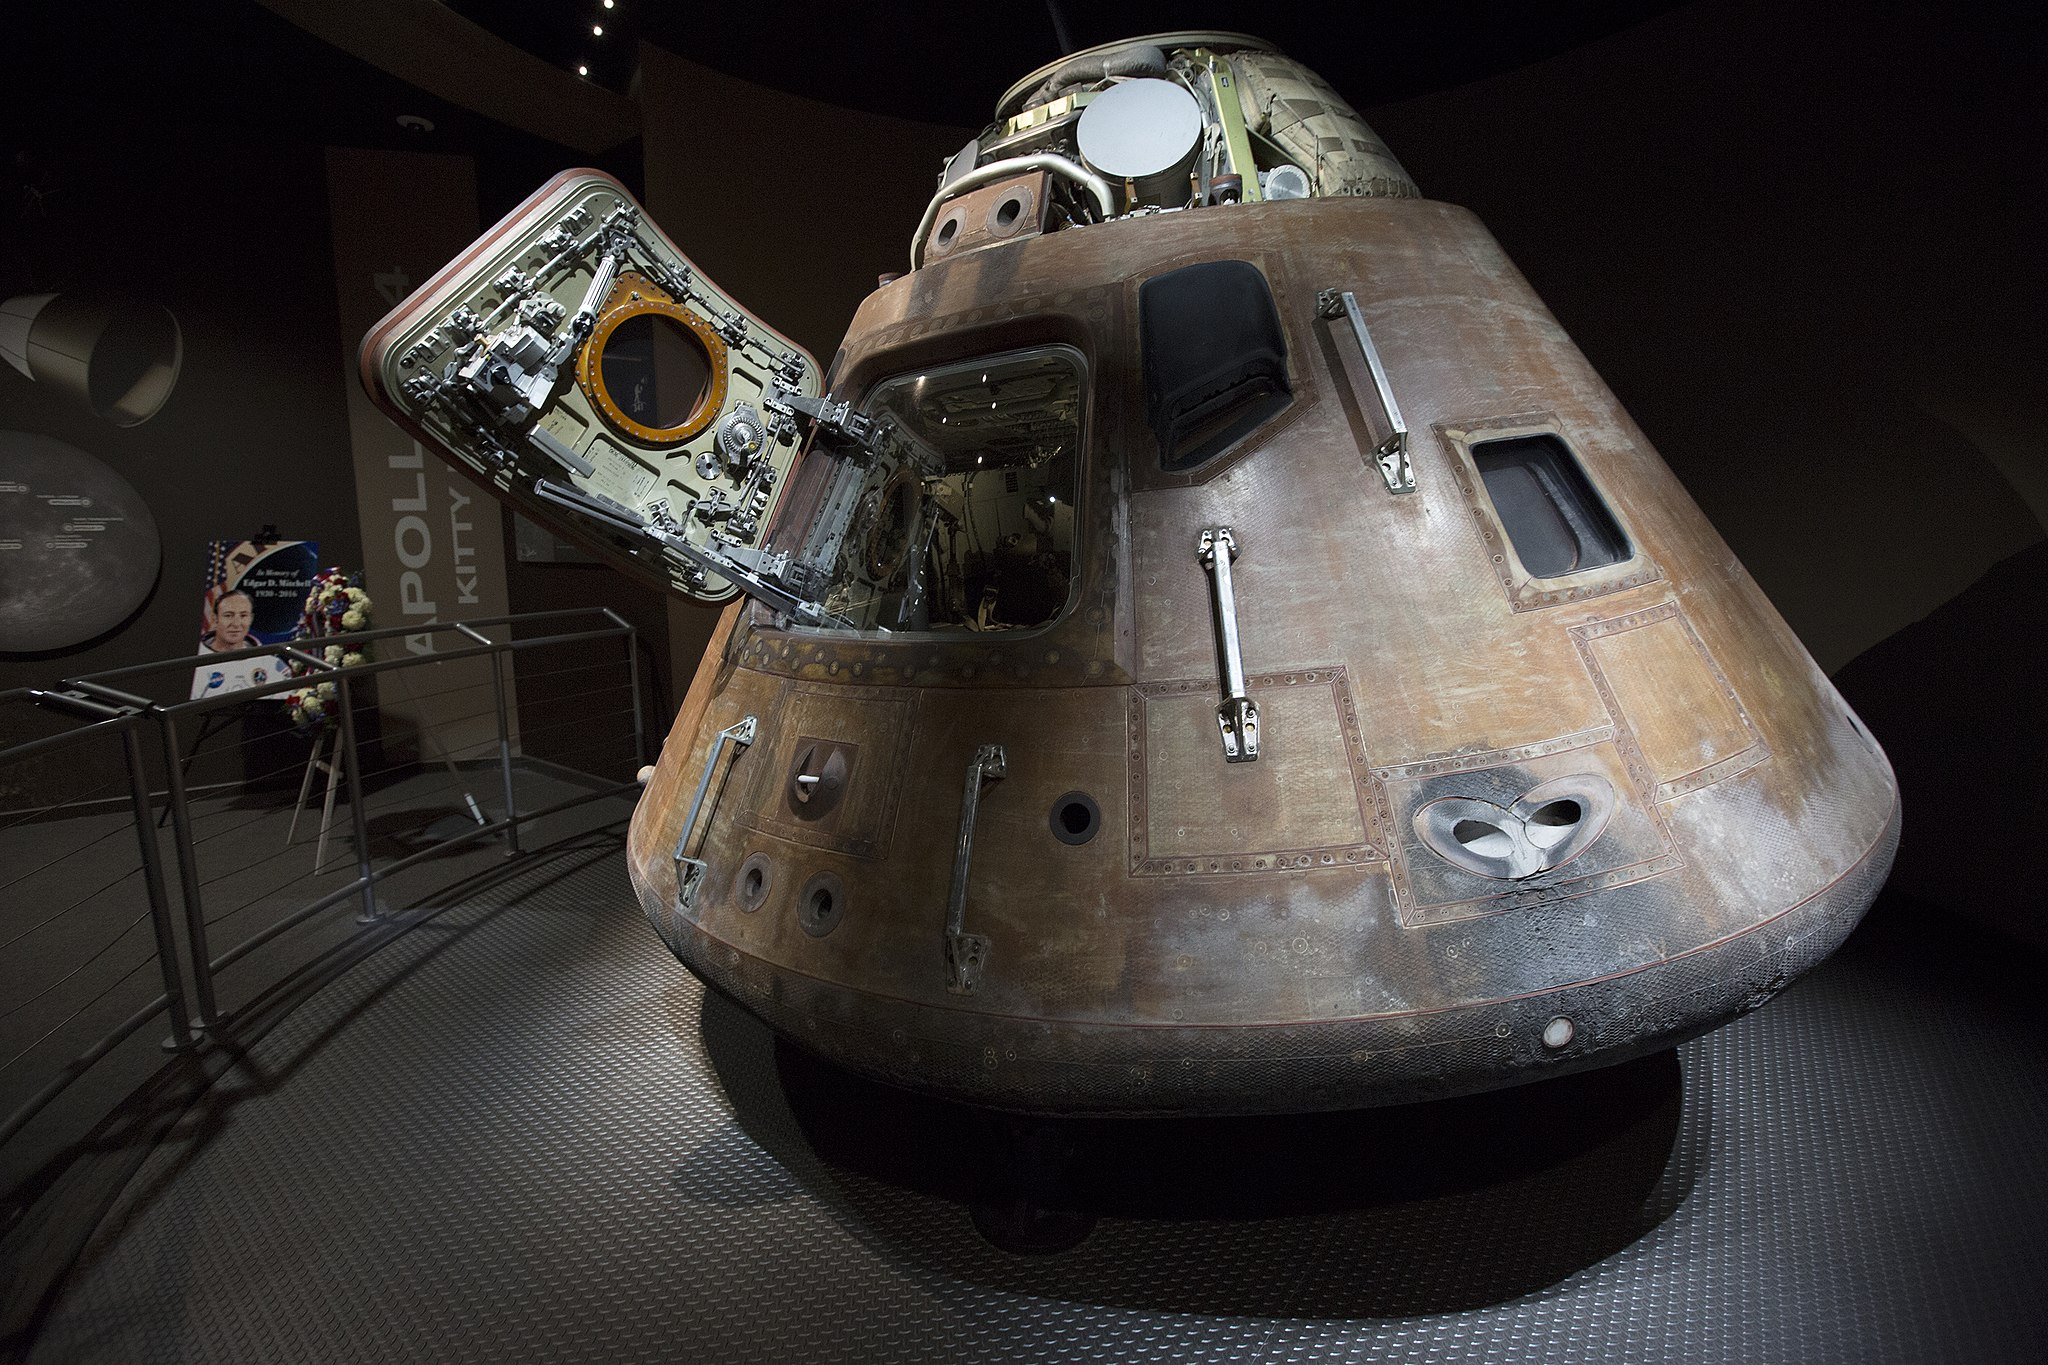 Apollo 14 command module with Edgar Mitchell's memorial wreath